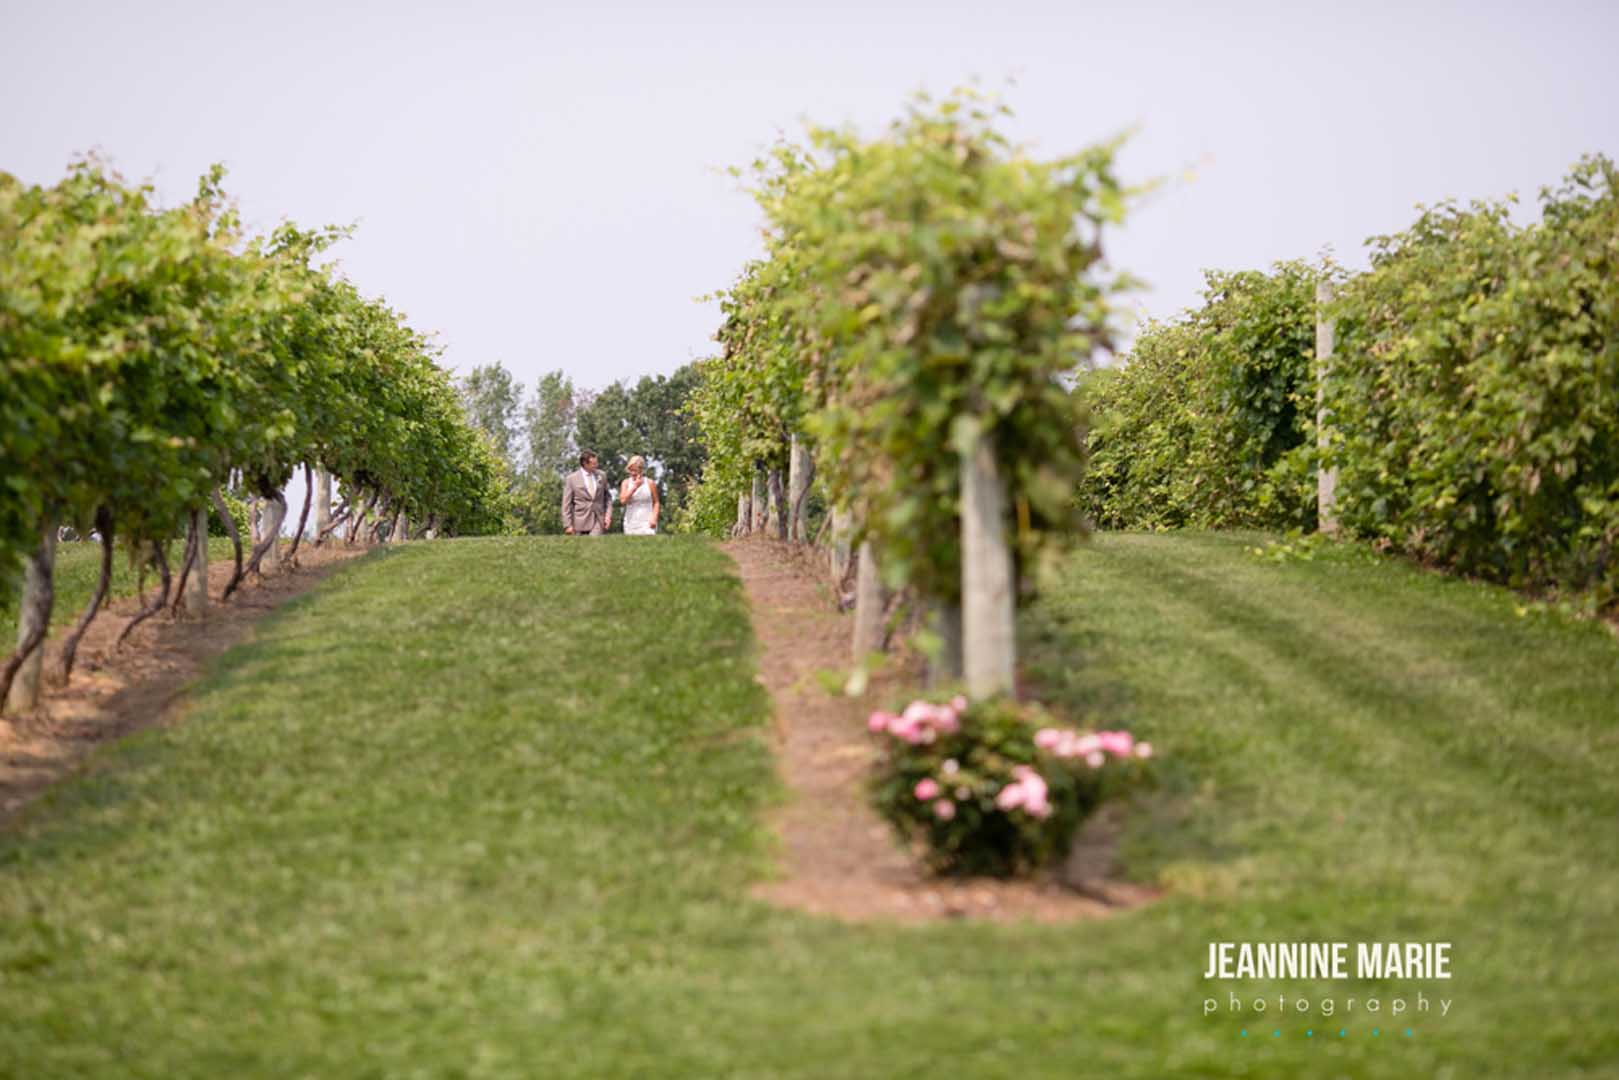 Couple walking through the grape vines at Cannon River Winery's vineyard